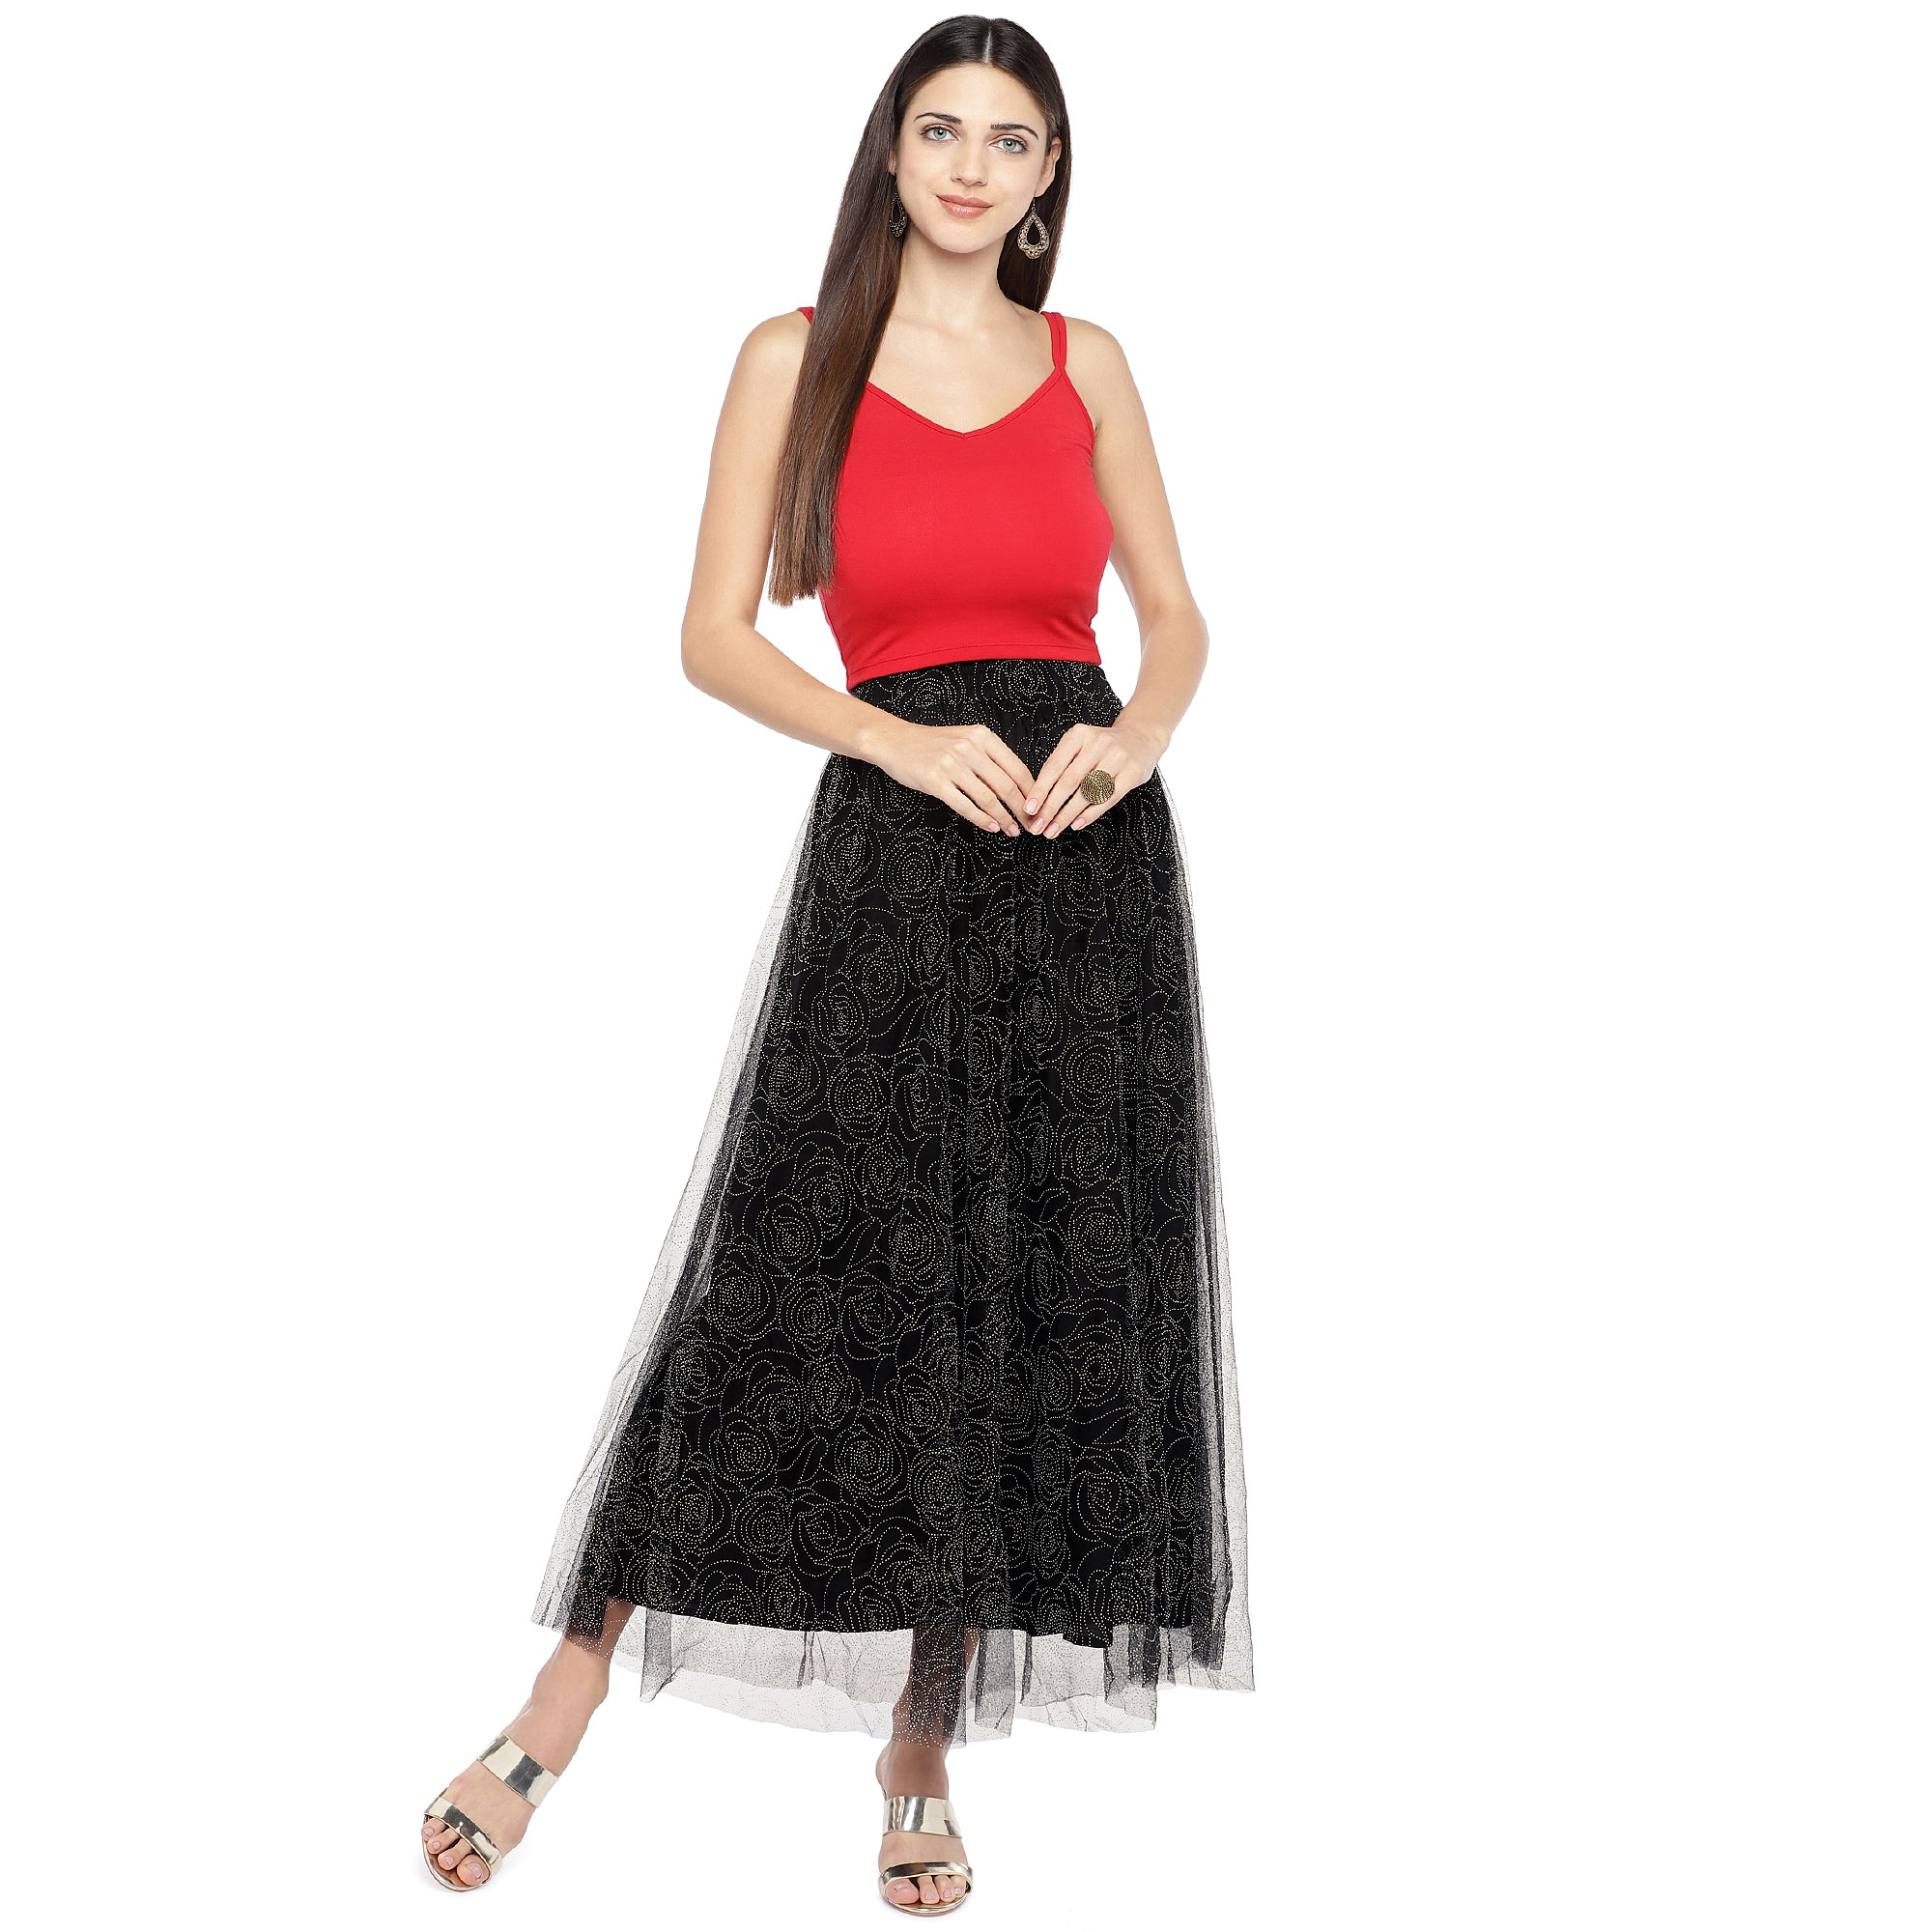 Black Embellished Flared Maxi Ethnic Skirt-4